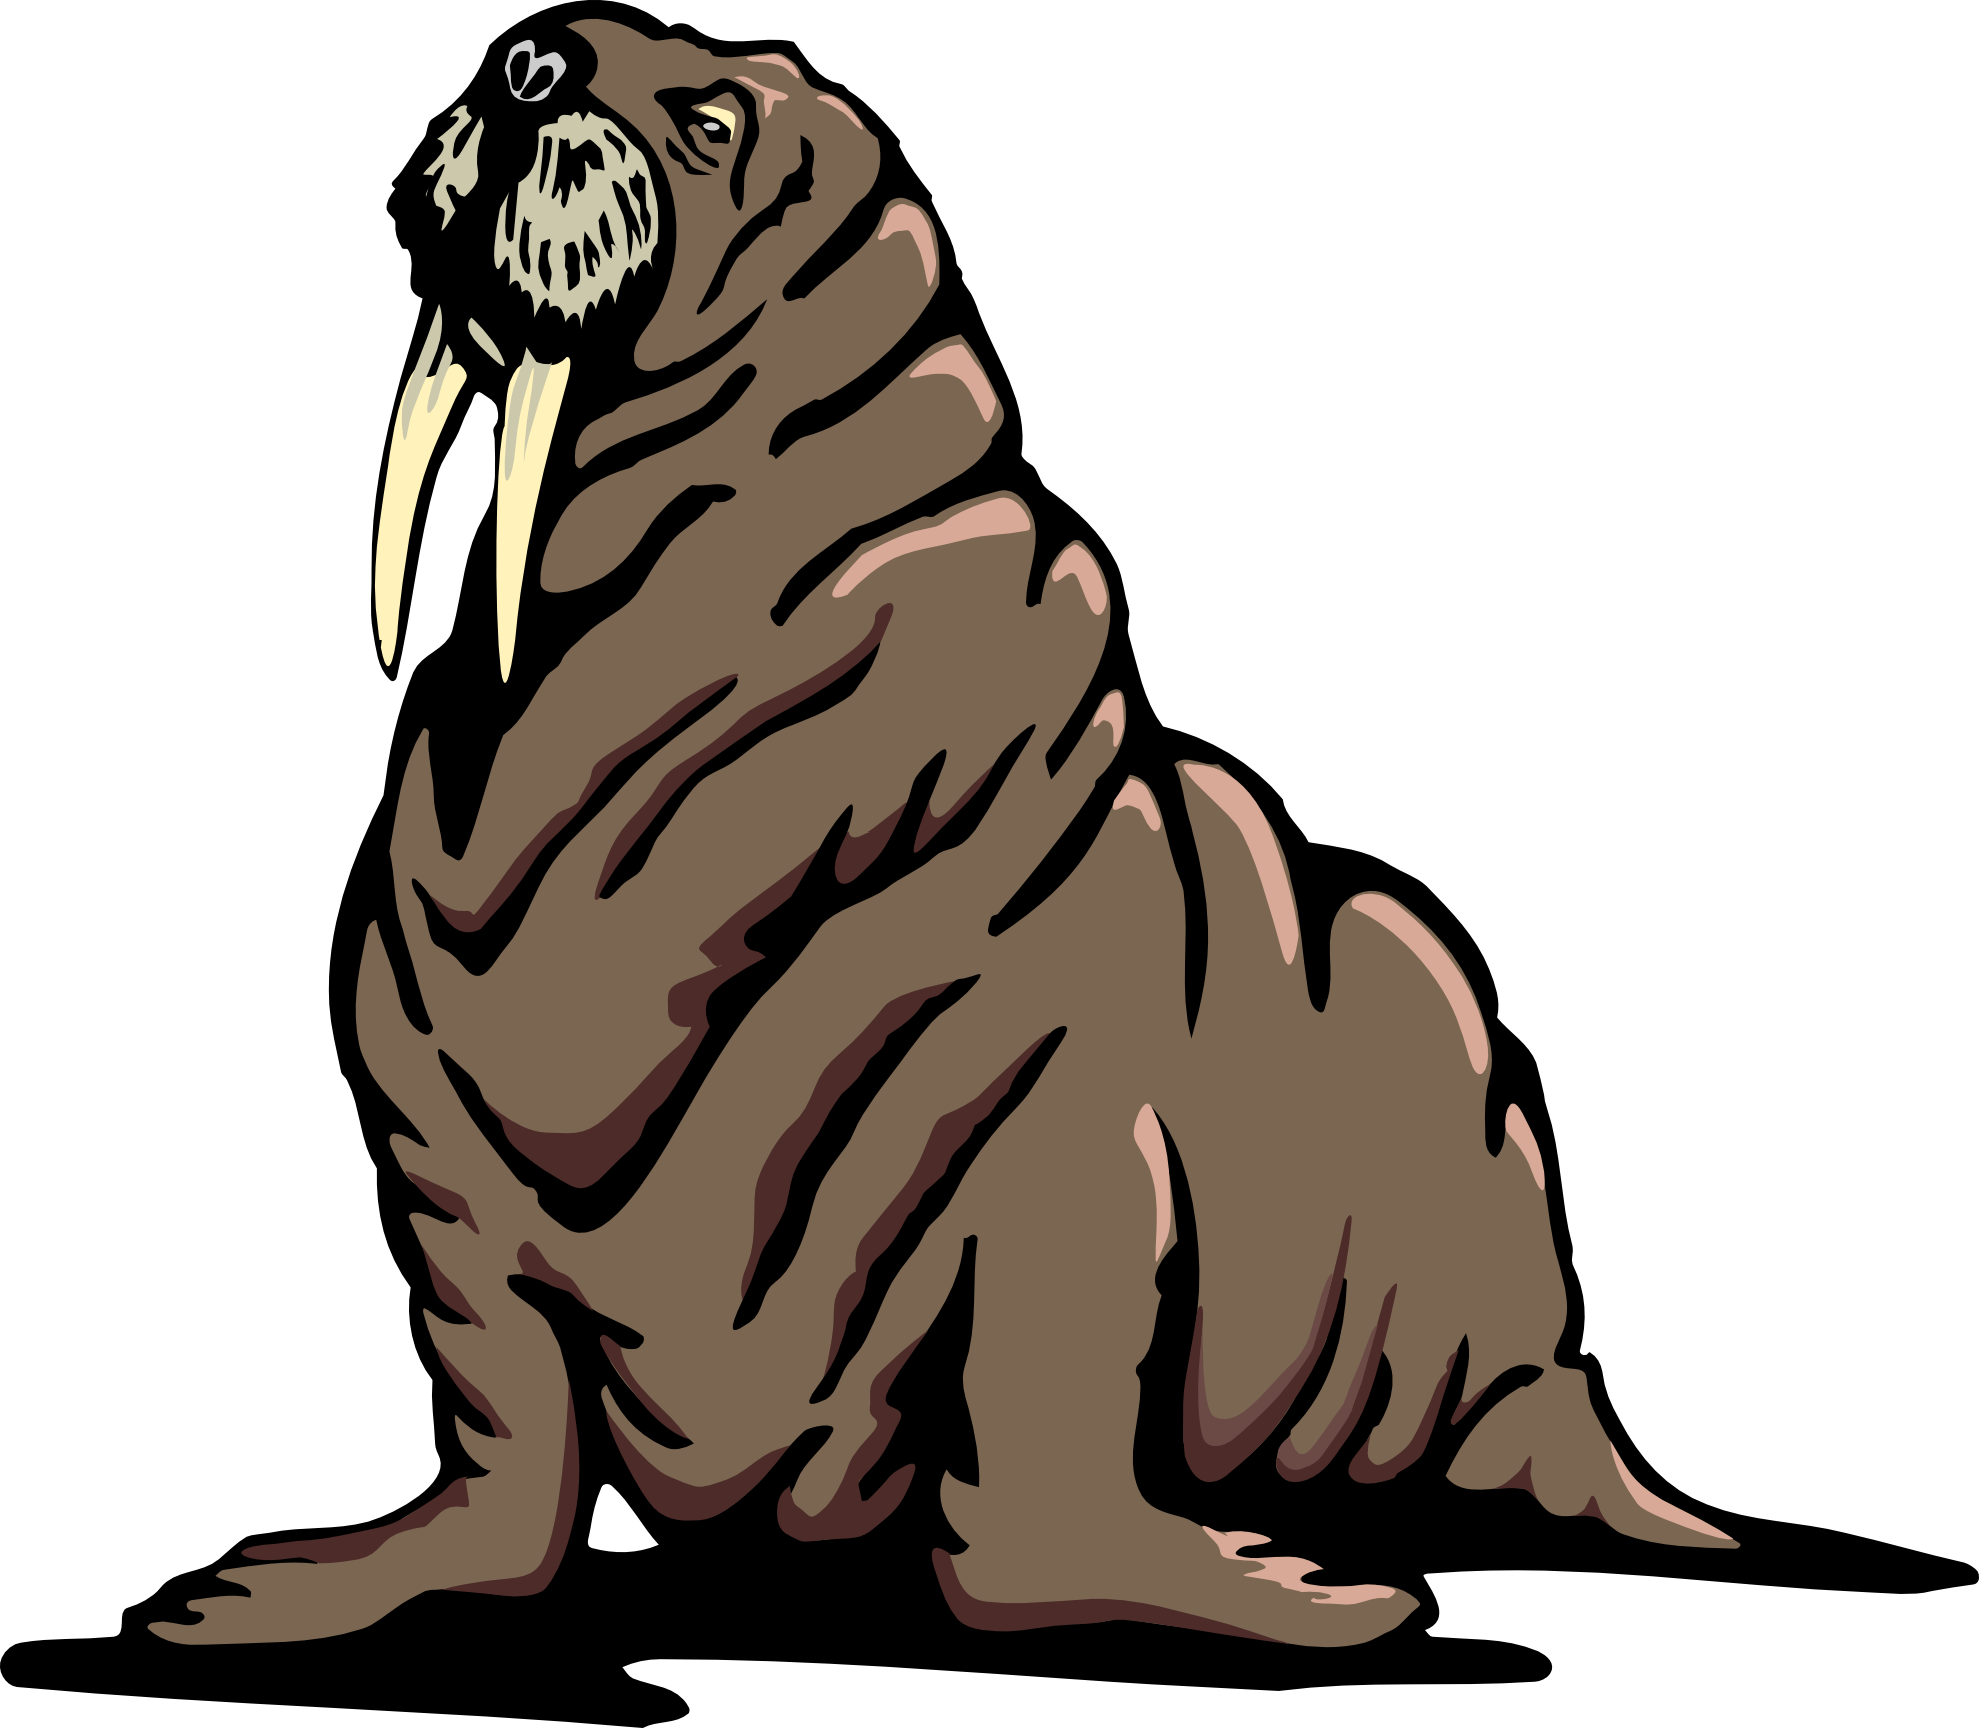 walrus 2 png 158 k clipart panda free clipart images rh clipartpanda com cute walrus clipart walrus clipart black and white